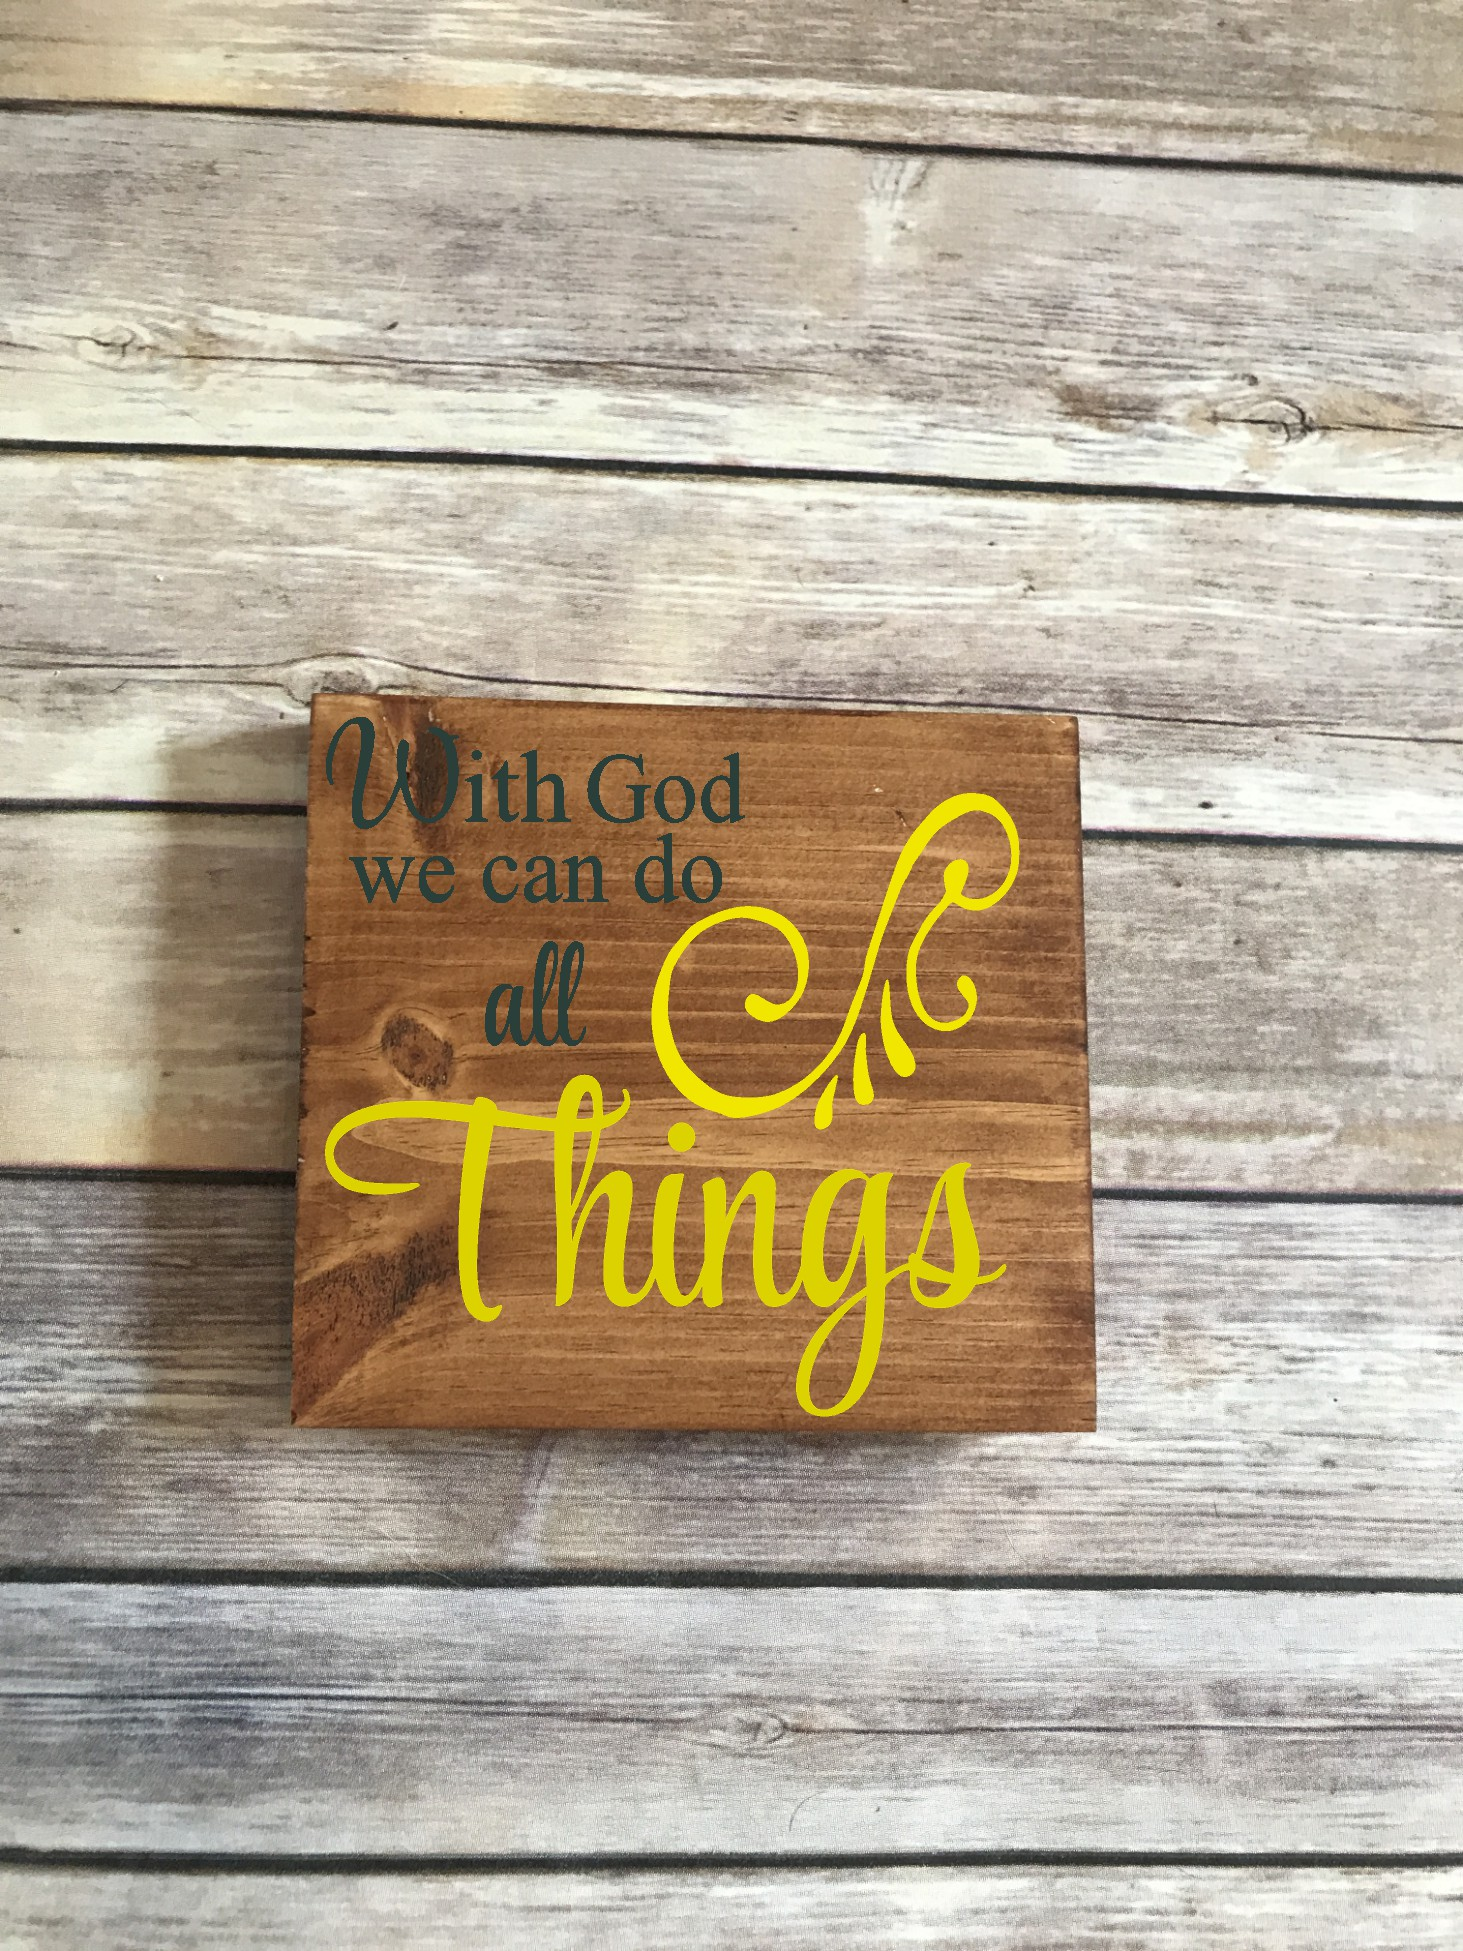 With God, we can do all things